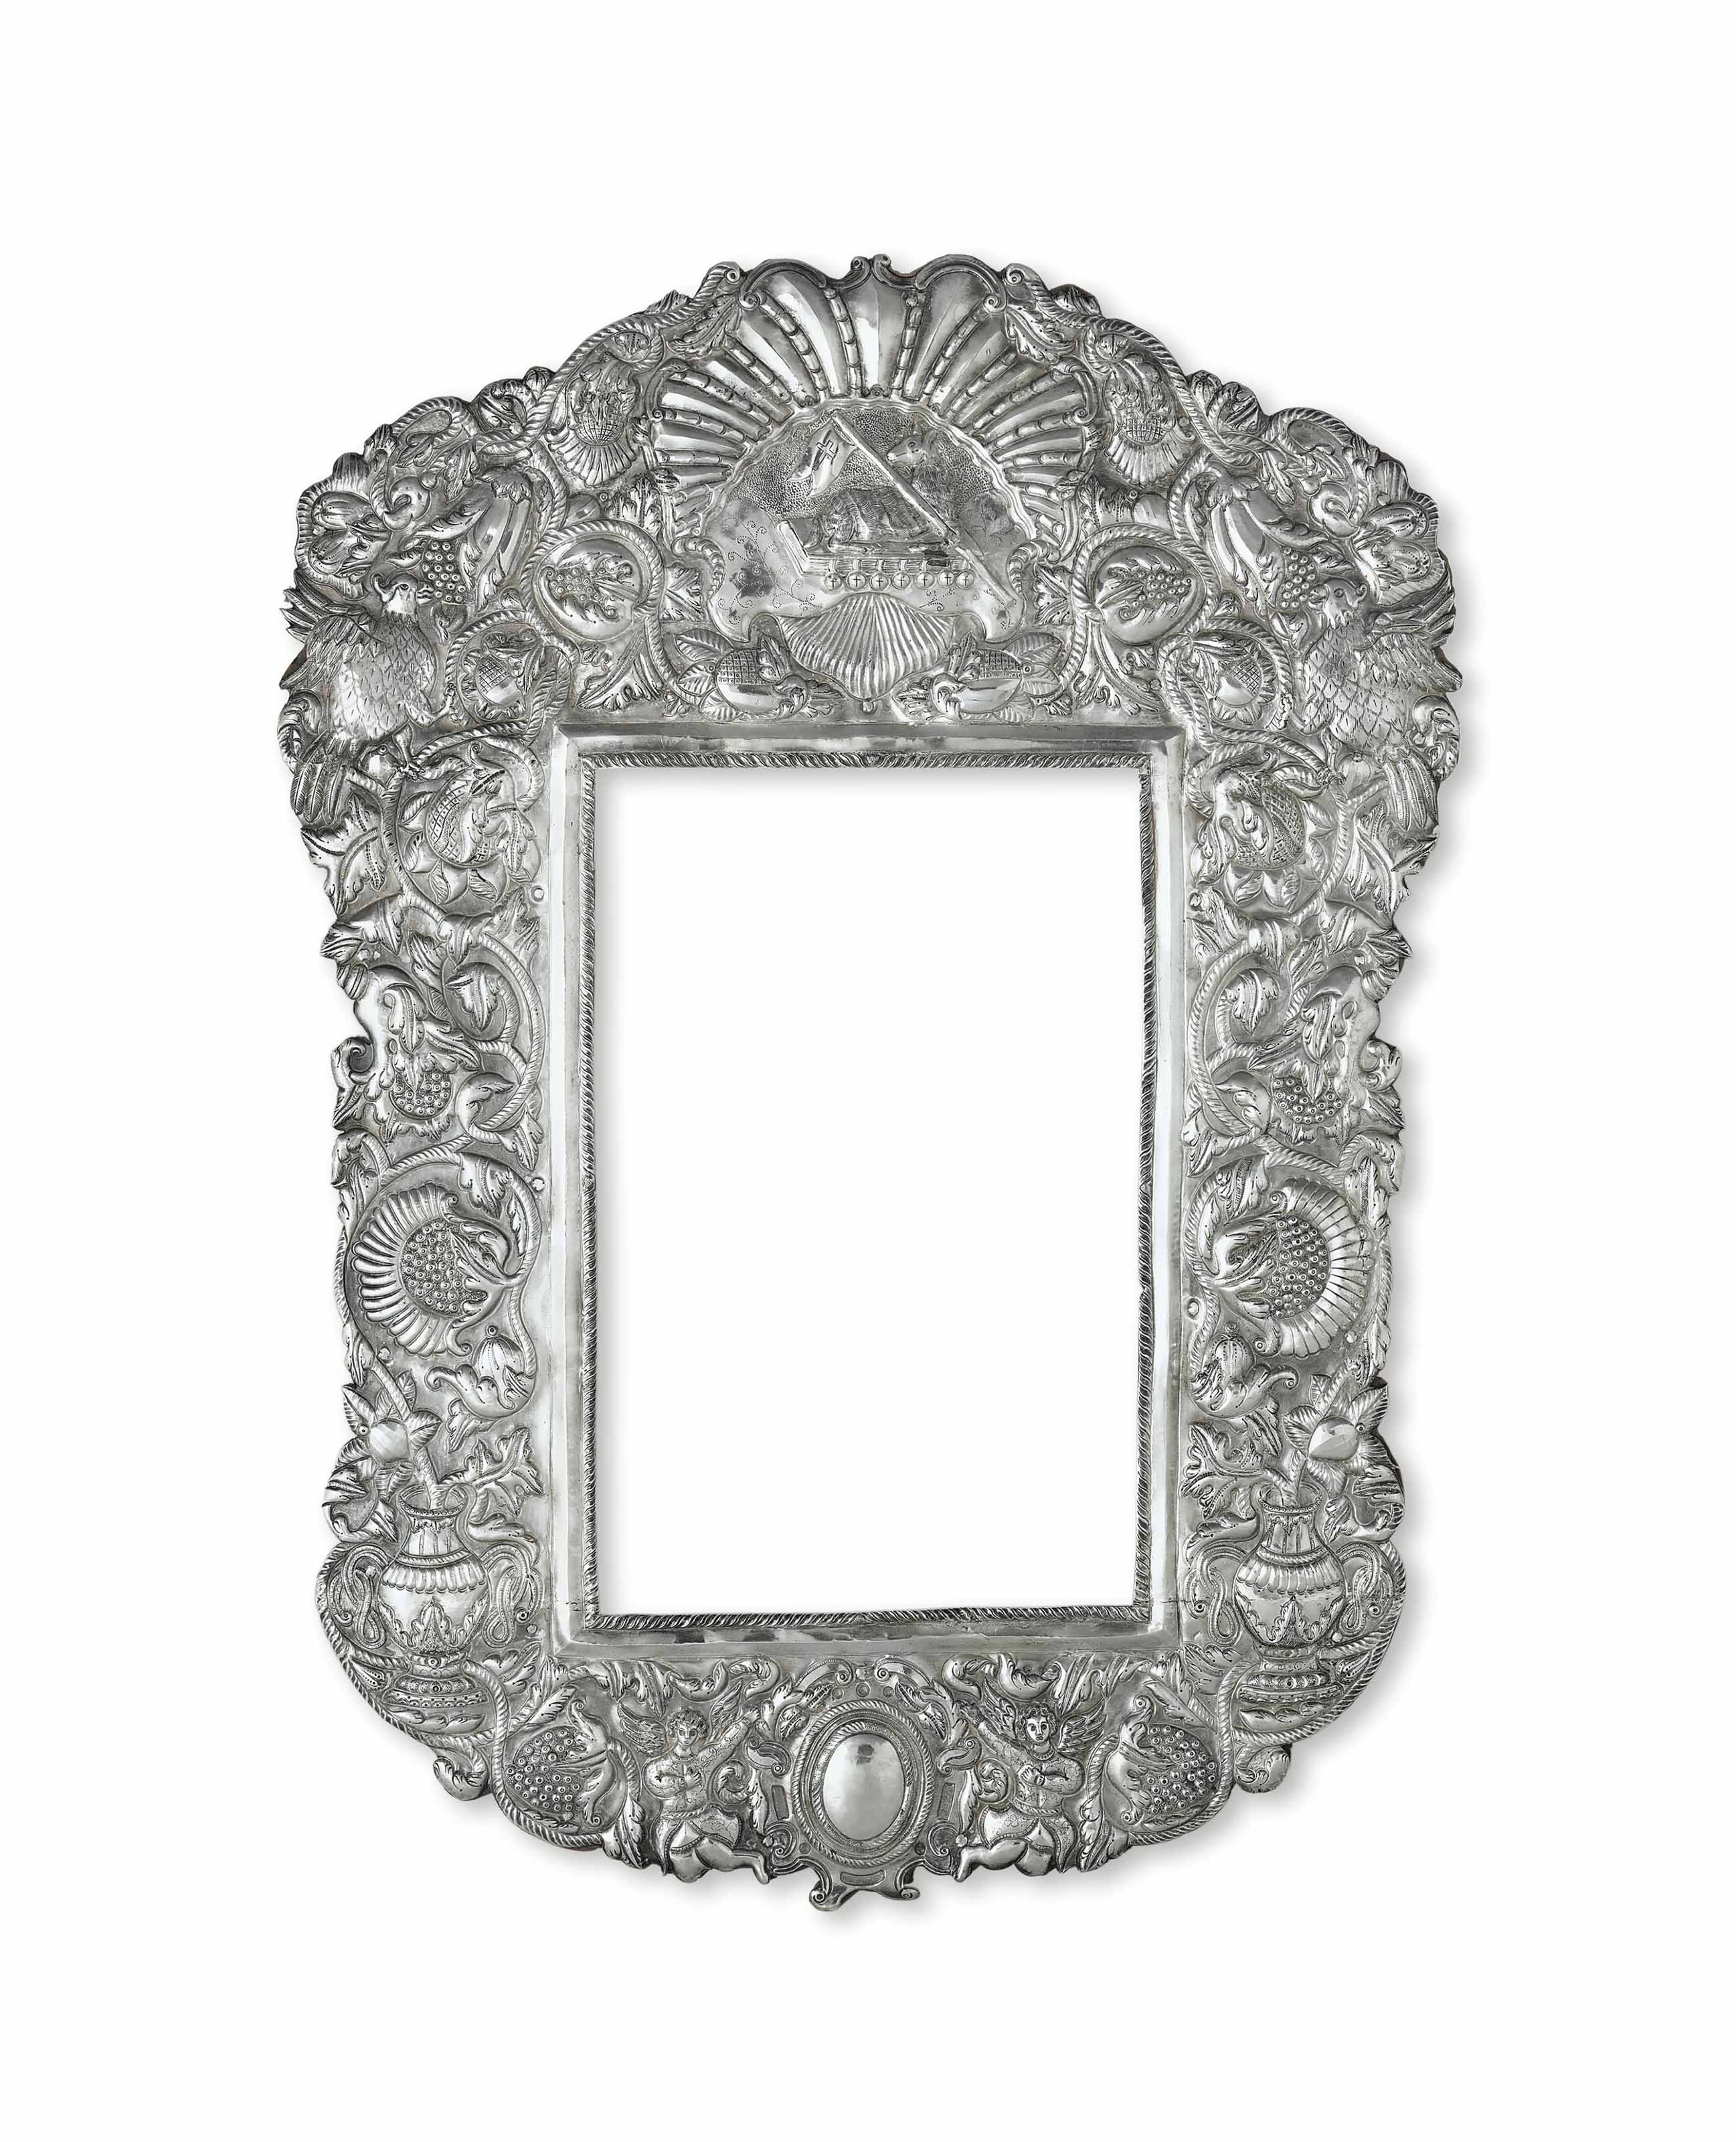 A SPANISH COLONIAL SILVER FRAME | ALTO PERU, LATE 18TH - EARLY 19TH ...